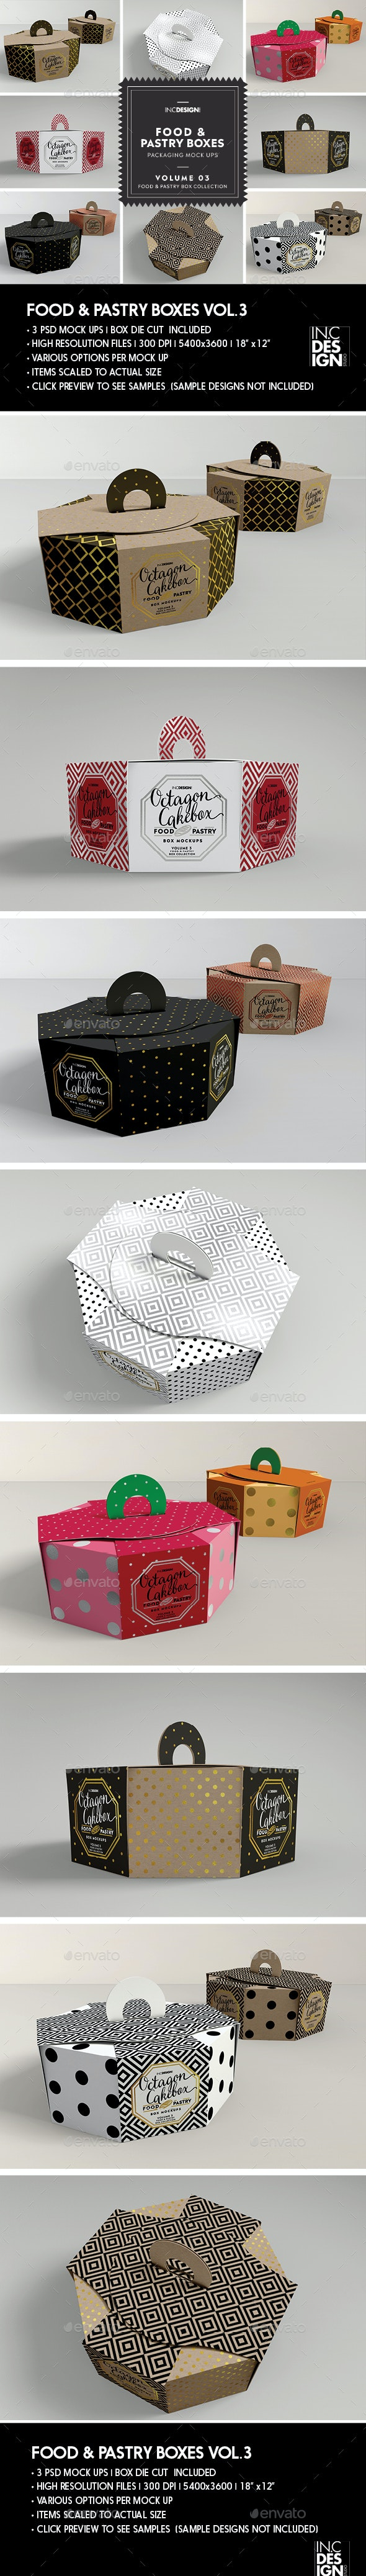 Food pastry Boxes Vol.3: Octagon Cake   Pastry Carrier Take Out Packaging Mockups - Food and Drink Packaging